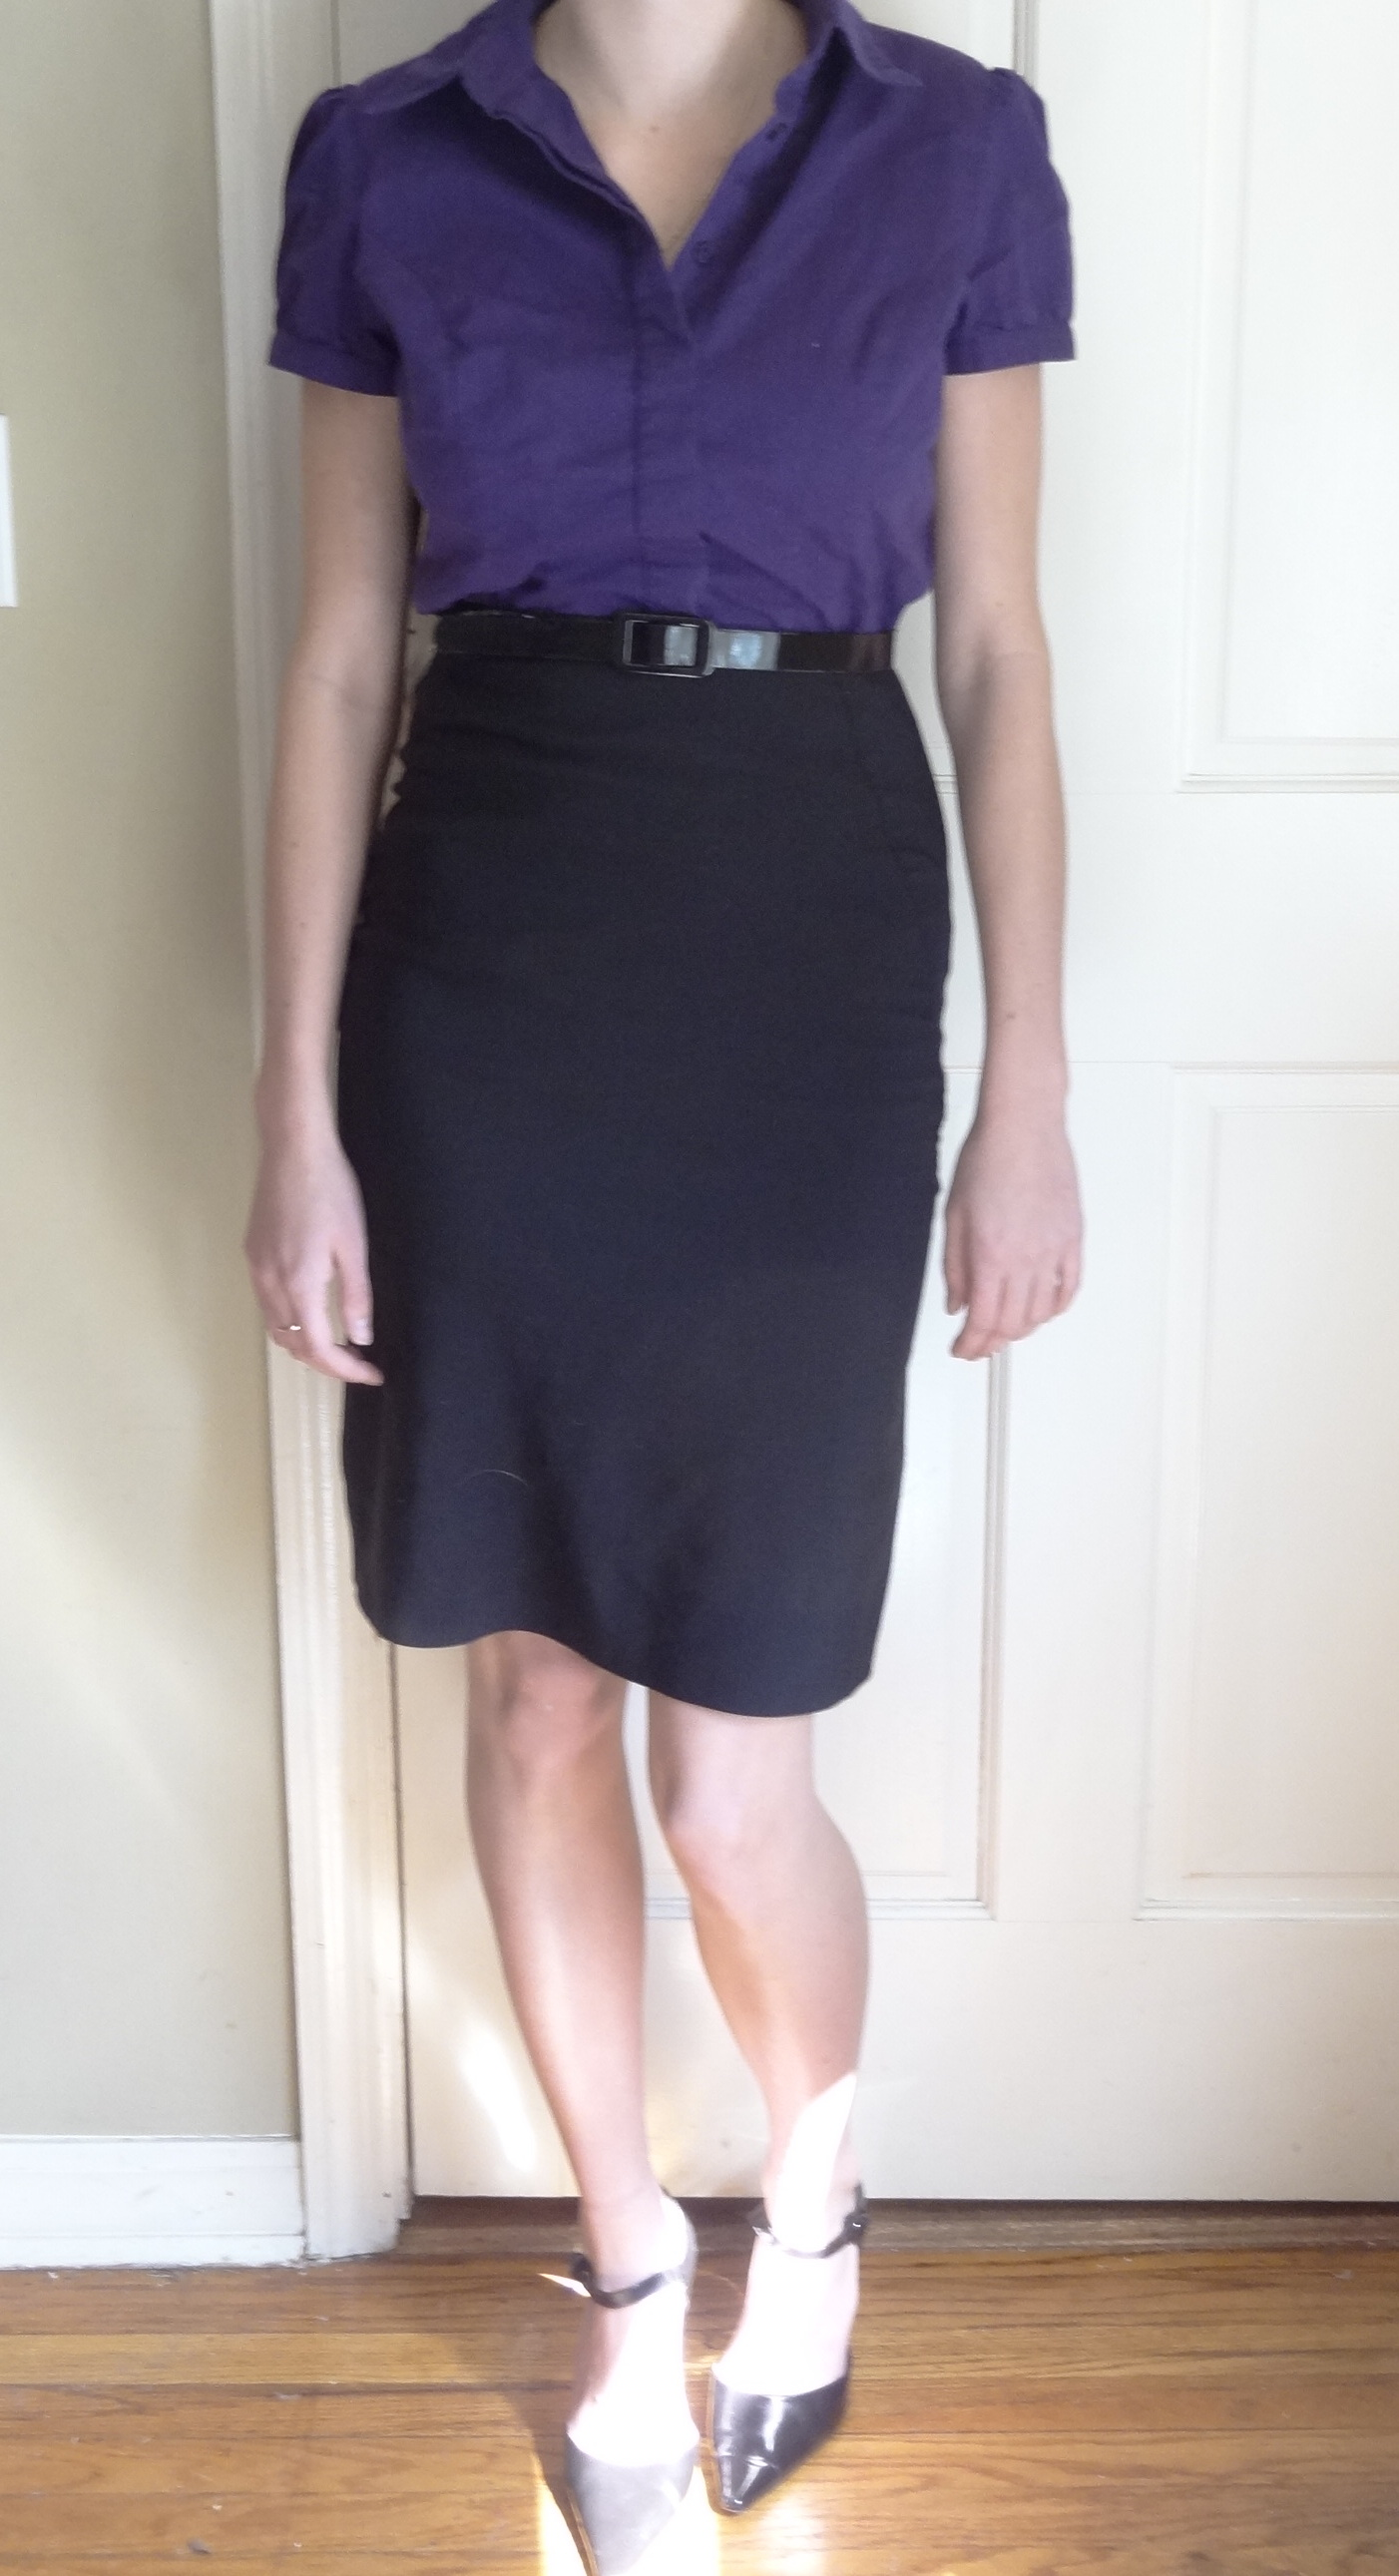 28ff lelaina purple top black skirt jpg she s